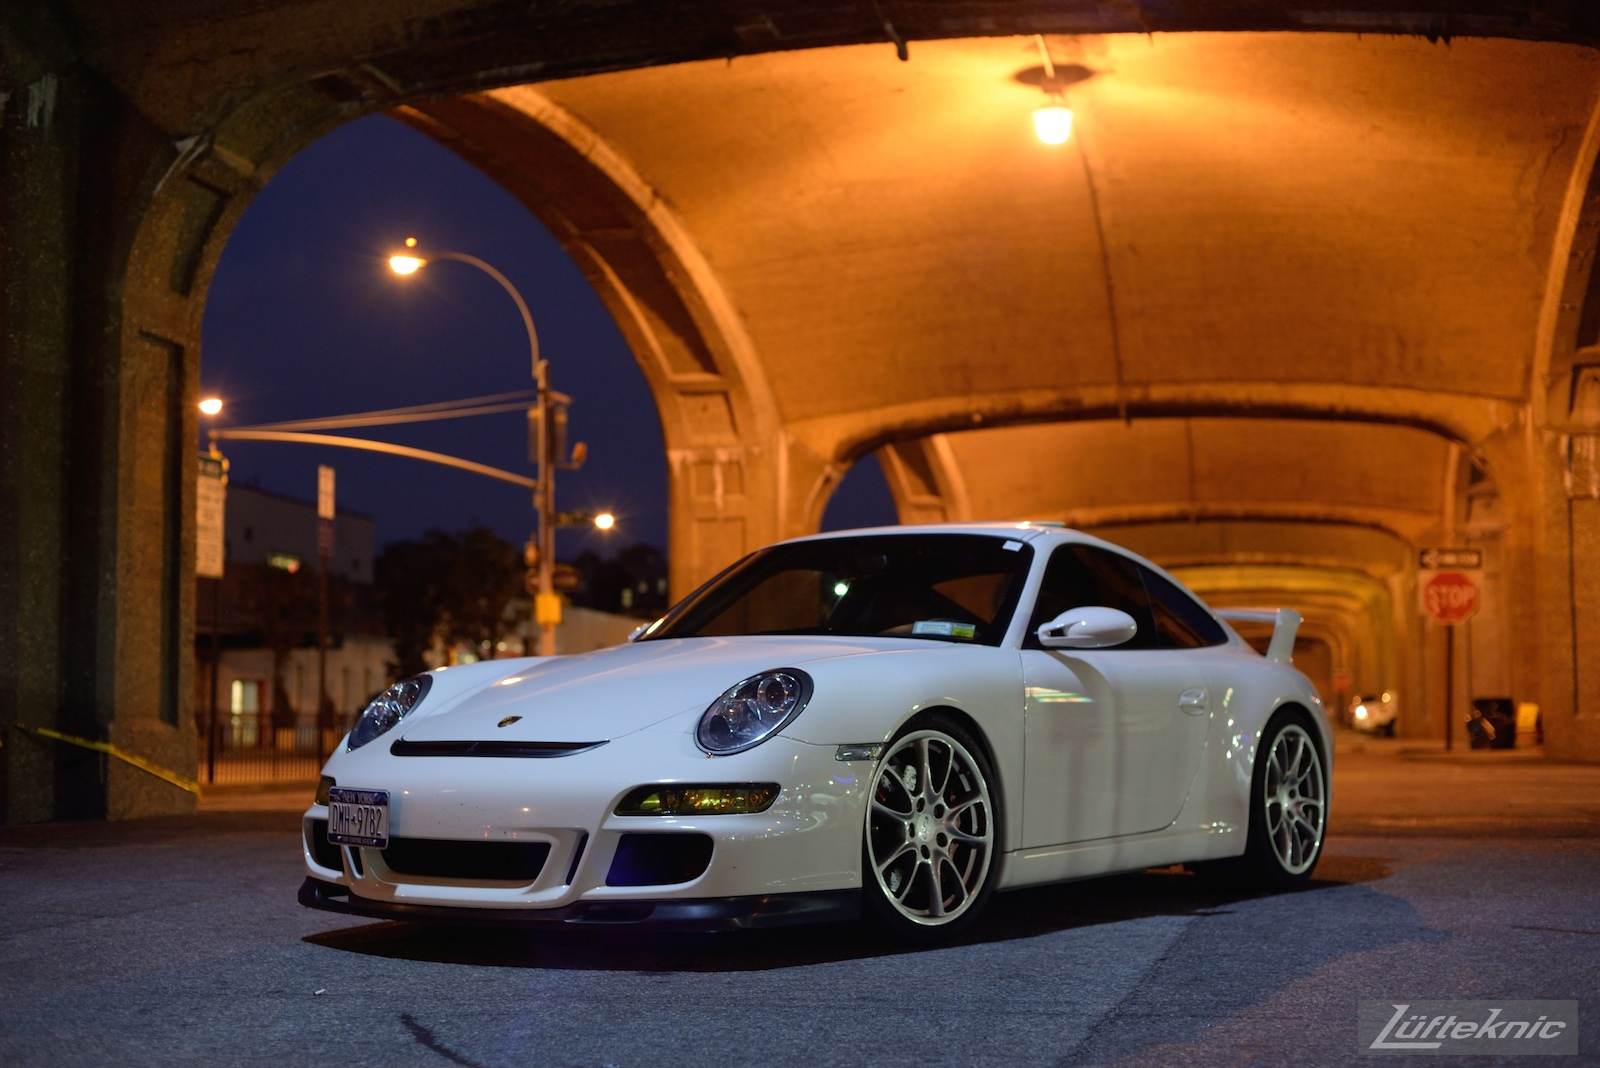 A white 997 GT3 viewed from the front under the 7 train bridge on Queens blvd at night.